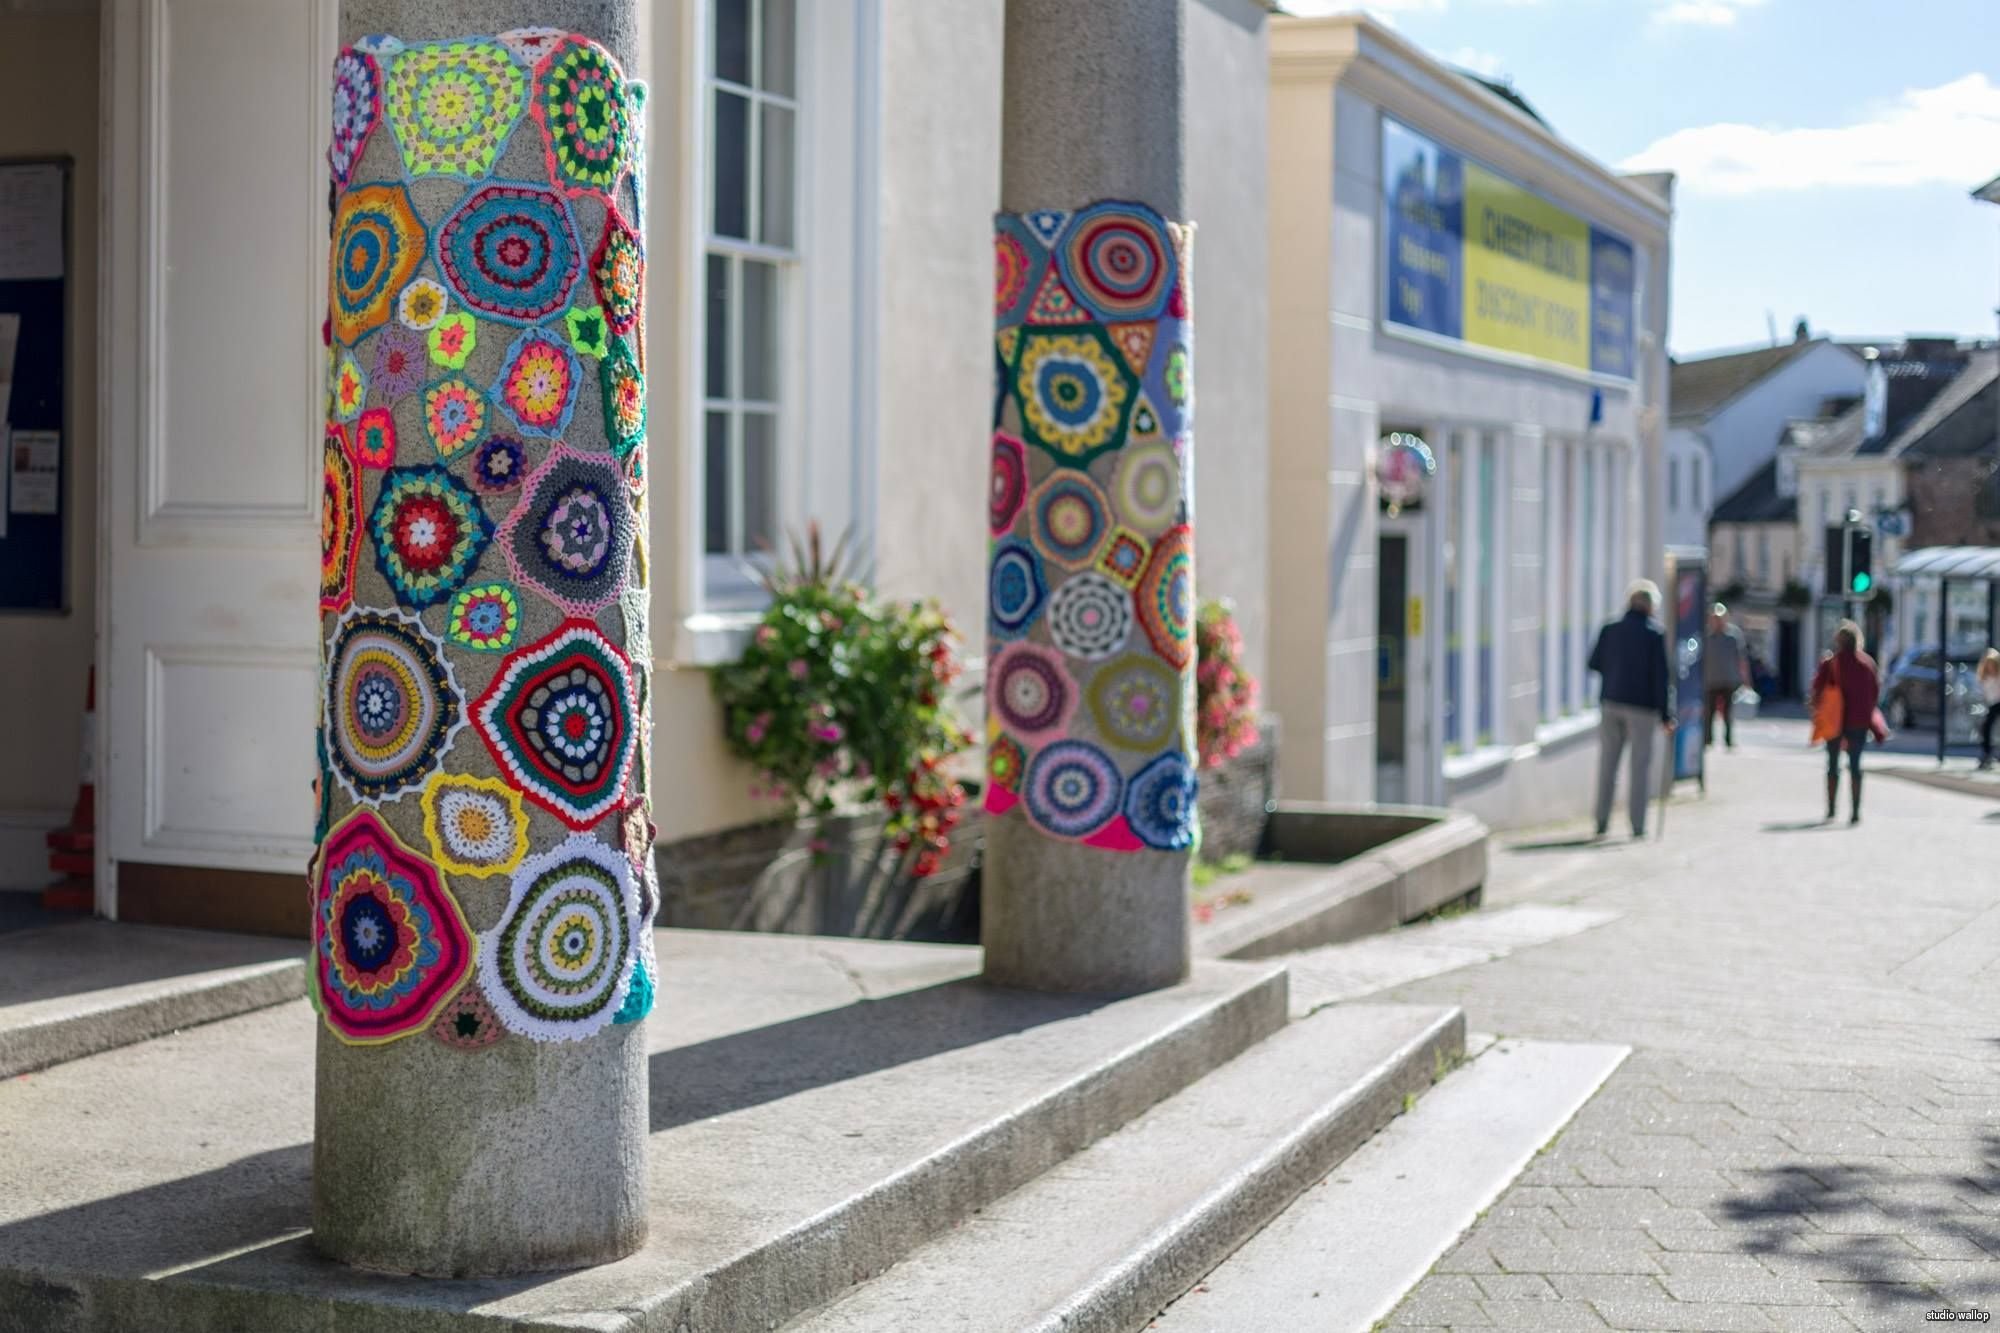 Fun Yarn Bombs Spotted in Liskeard For Their Annual Wool Festival